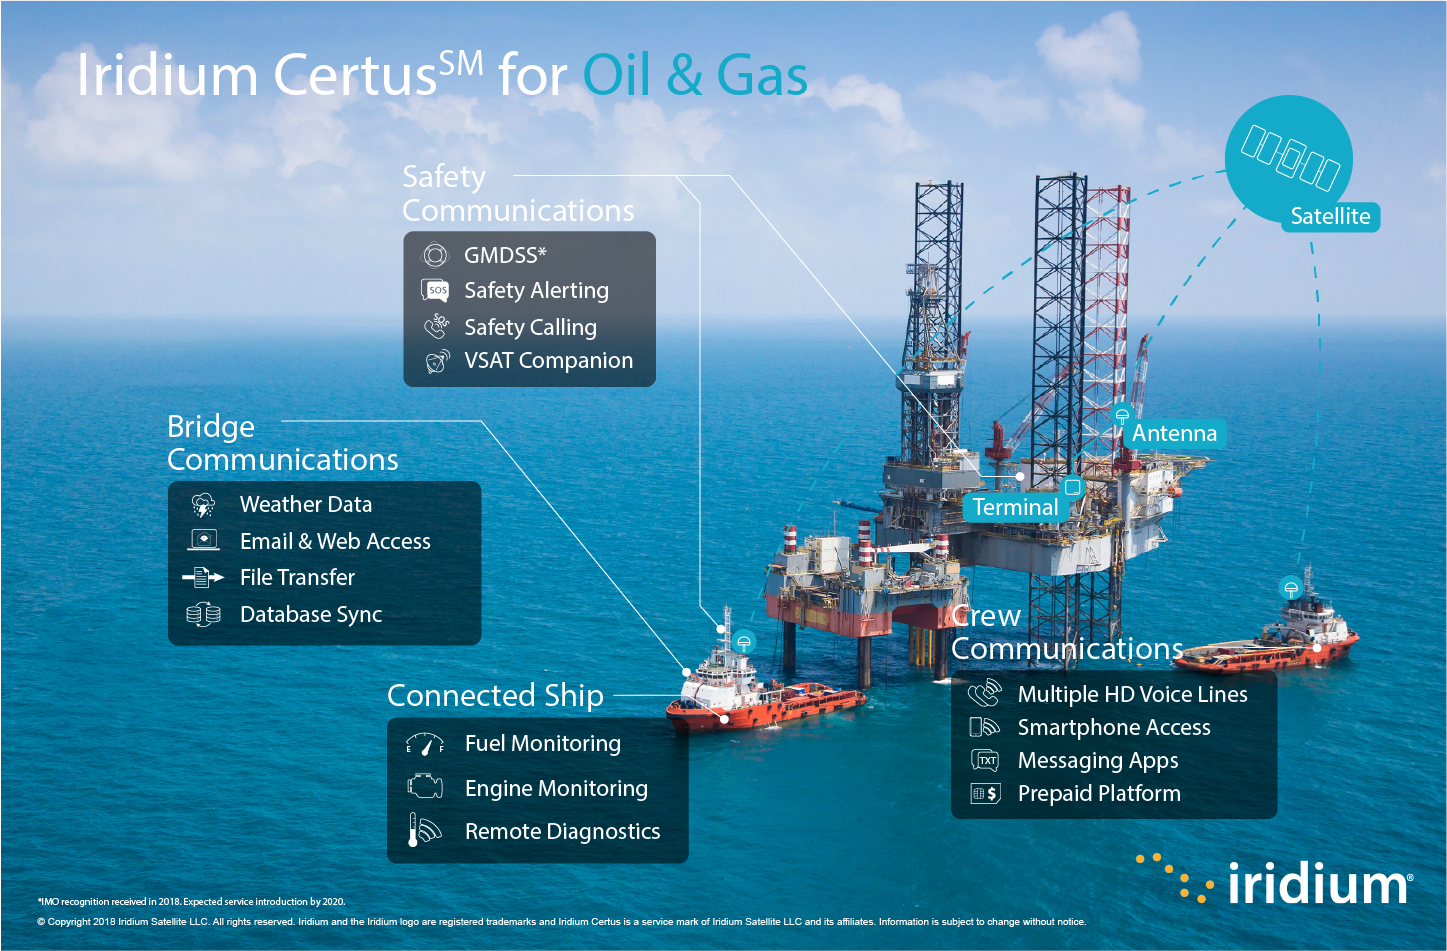 Infographic showing use cases for Iridium Certus within oil & gas.